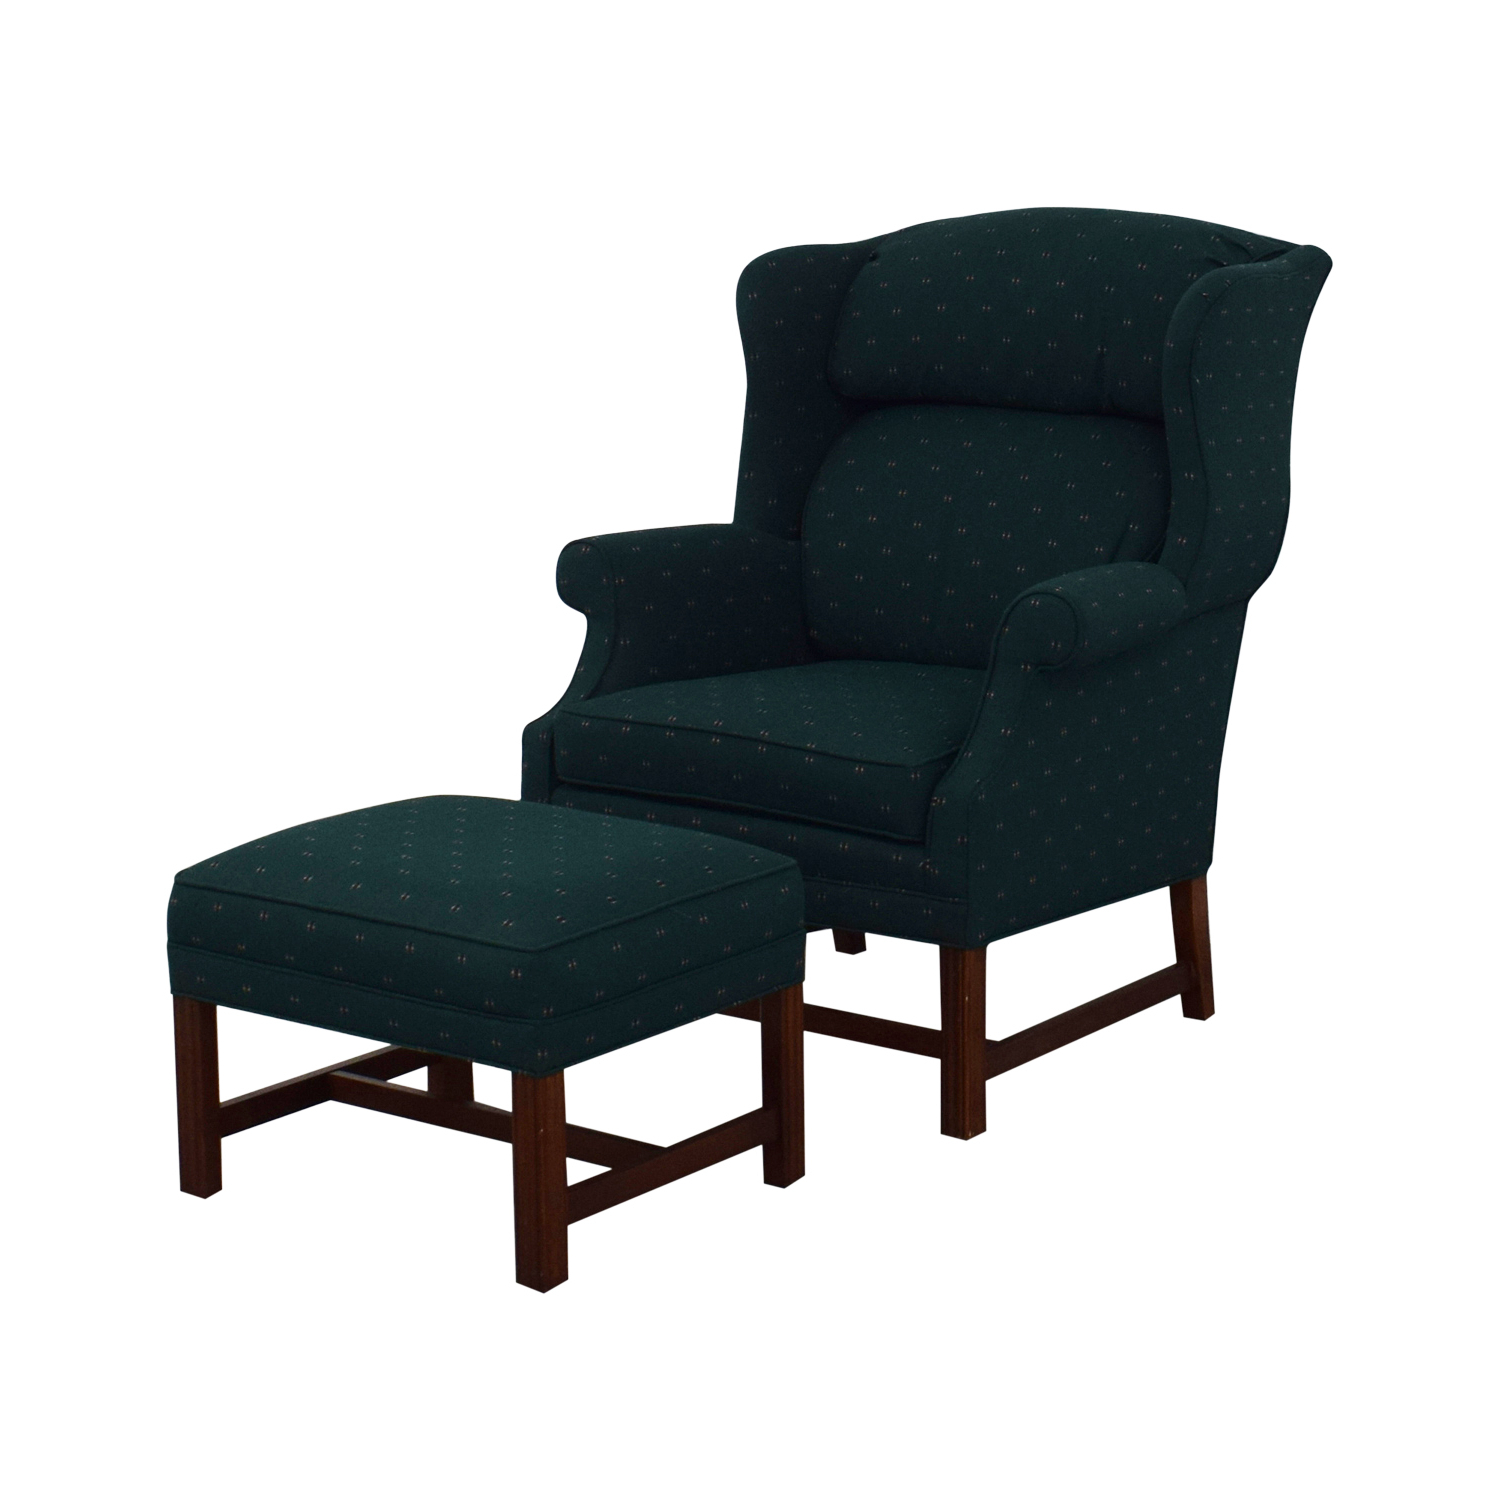 [%84% Off – Conover Chair Company Conover Chair Company Green Wingback Accent  Chair And Ottoman / Chairs Throughout Most Recent Conover 5 Piece Dining Sets|Conover 5 Piece Dining Sets With Regard To Fashionable 84% Off – Conover Chair Company Conover Chair Company Green Wingback Accent  Chair And Ottoman / Chairs|Current Conover 5 Piece Dining Sets Within 84% Off – Conover Chair Company Conover Chair Company Green Wingback Accent  Chair And Ottoman / Chairs|Well Known 84% Off – Conover Chair Company Conover Chair Company Green Wingback Accent  Chair And Ottoman / Chairs Inside Conover 5 Piece Dining Sets%] (View 2 of 20)